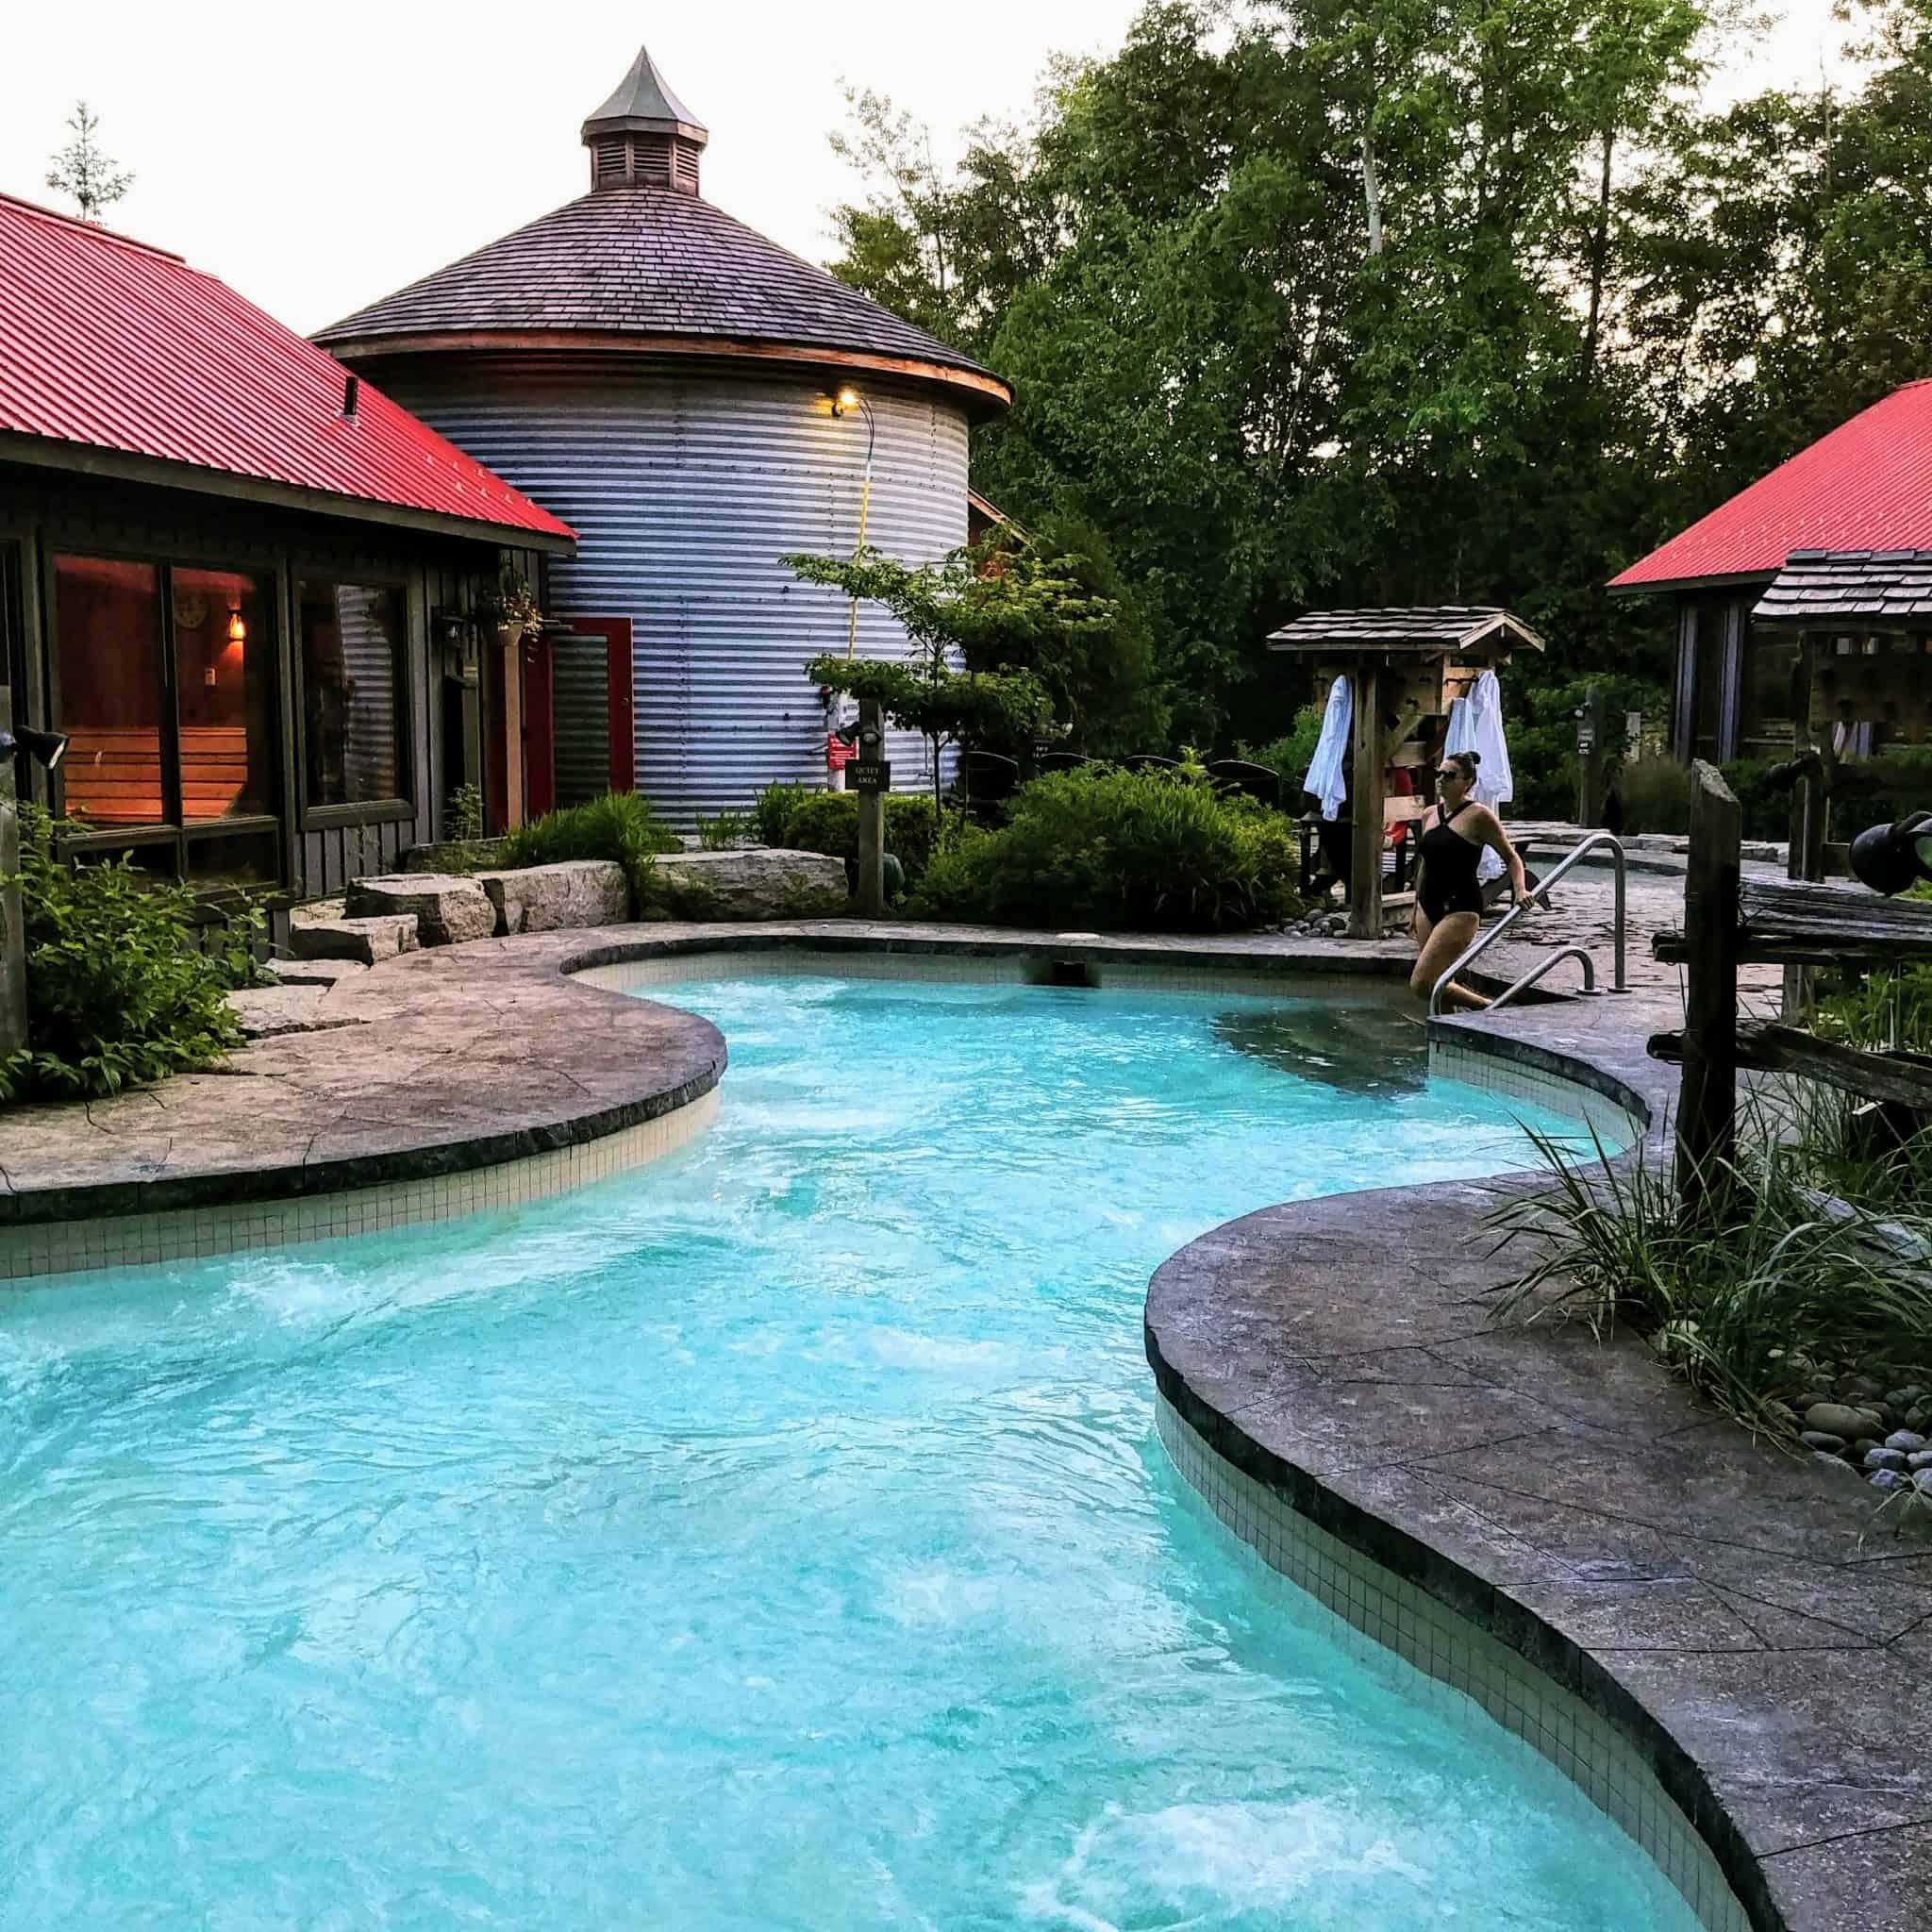 Summer Serenity at Scandinave Spa entering baths swimsuit forest views